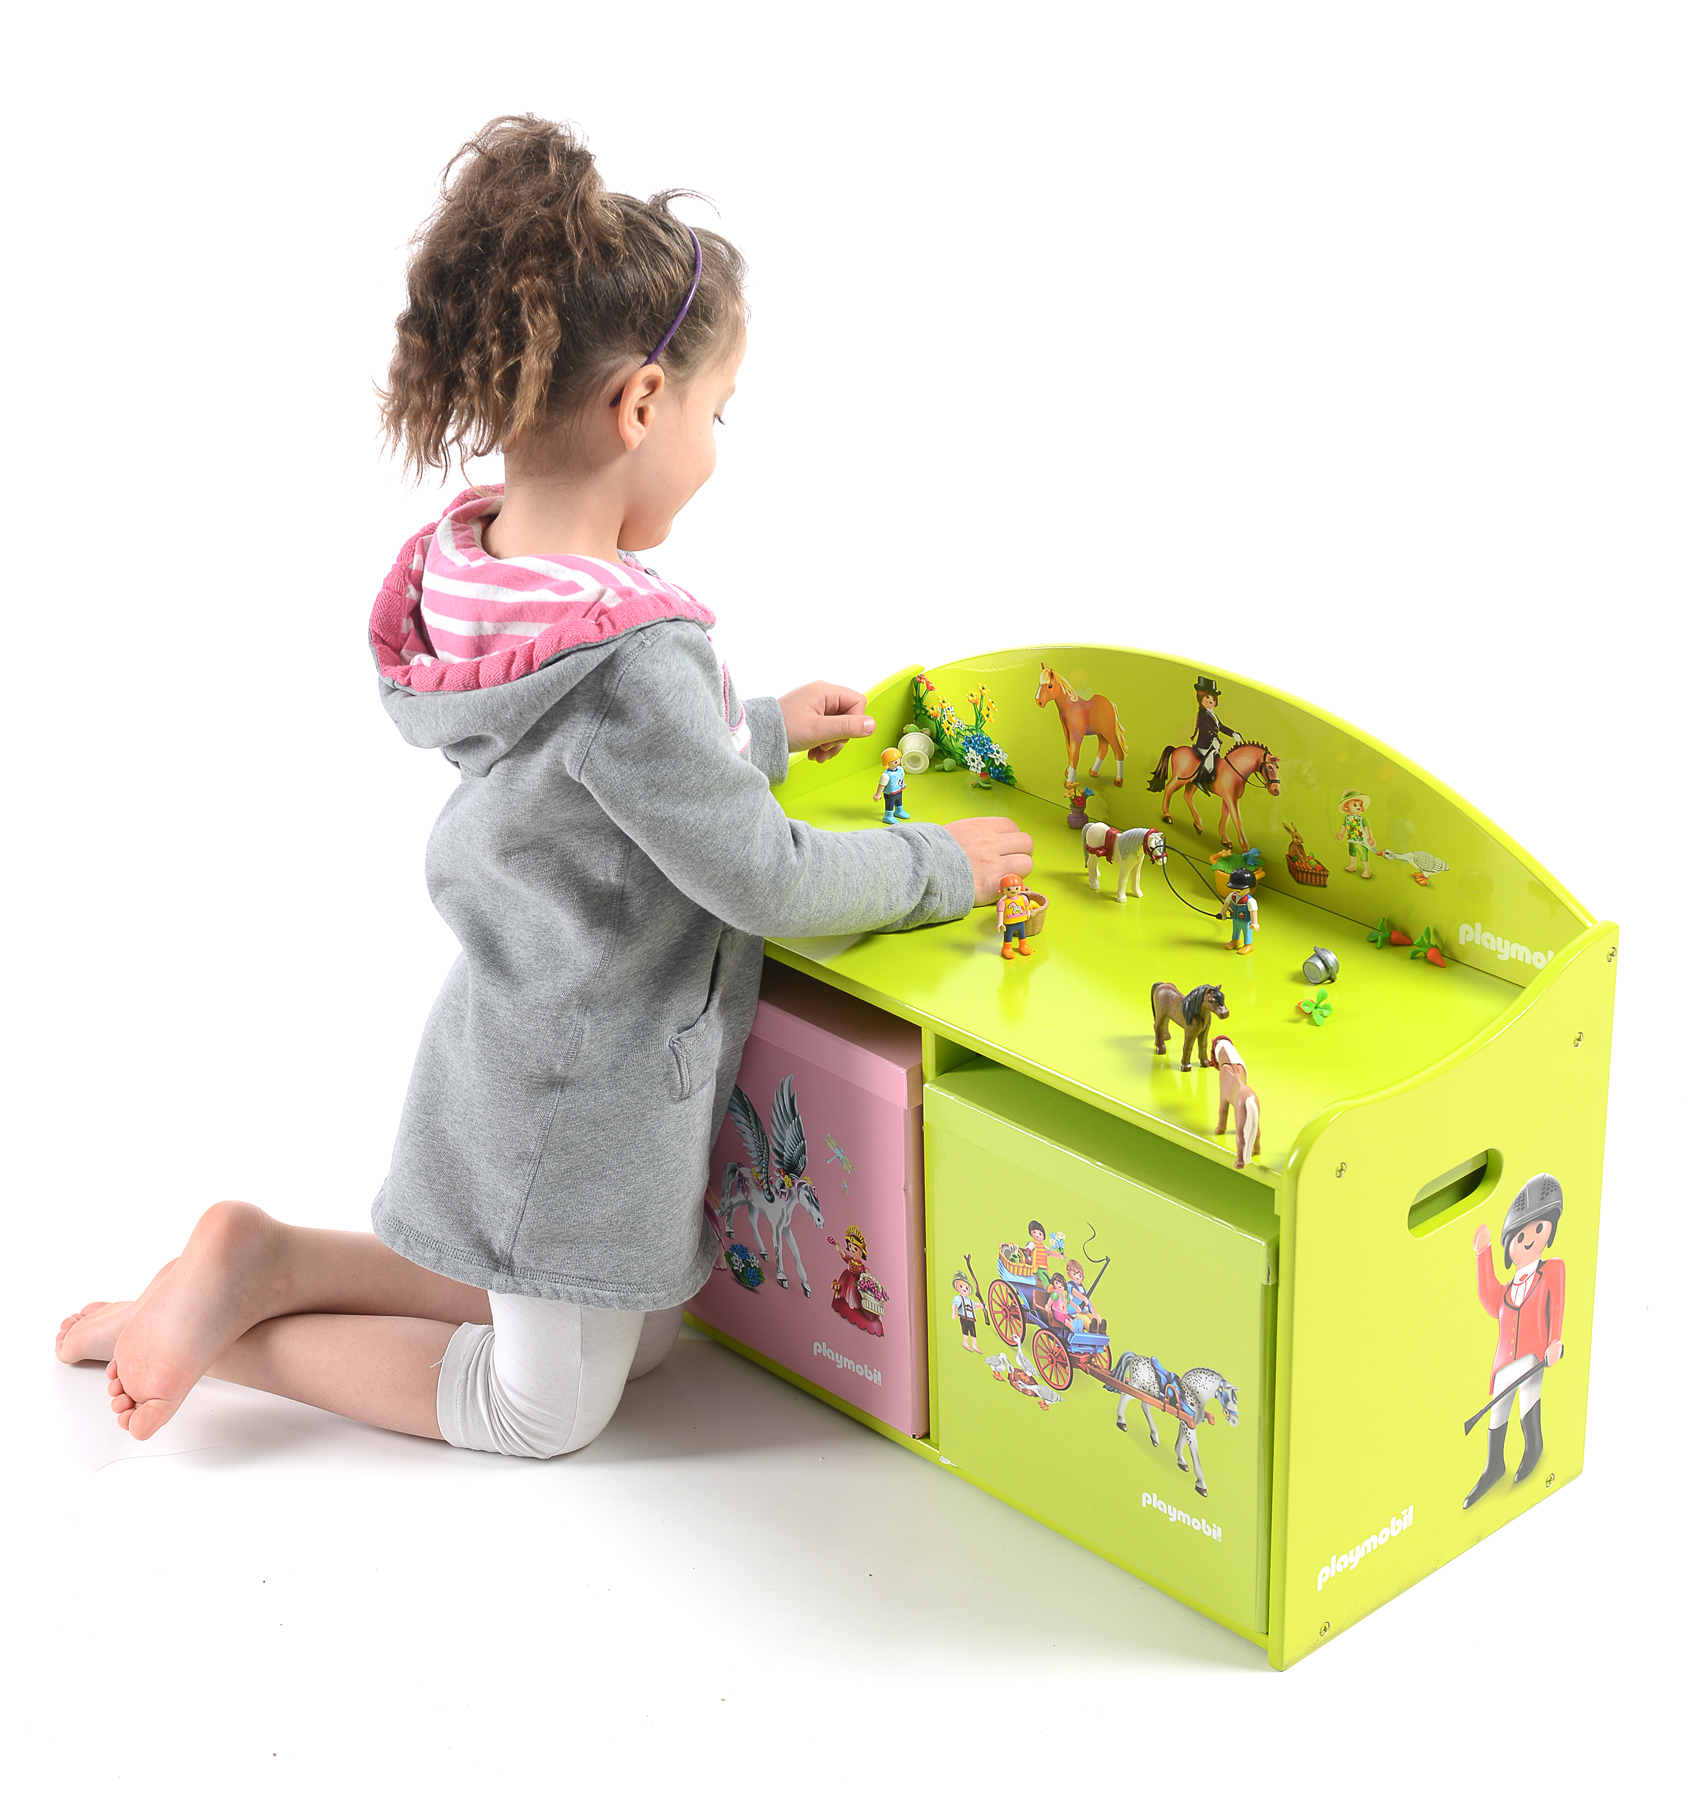 playmobil en avant les rangements relations publiques pro. Black Bedroom Furniture Sets. Home Design Ideas